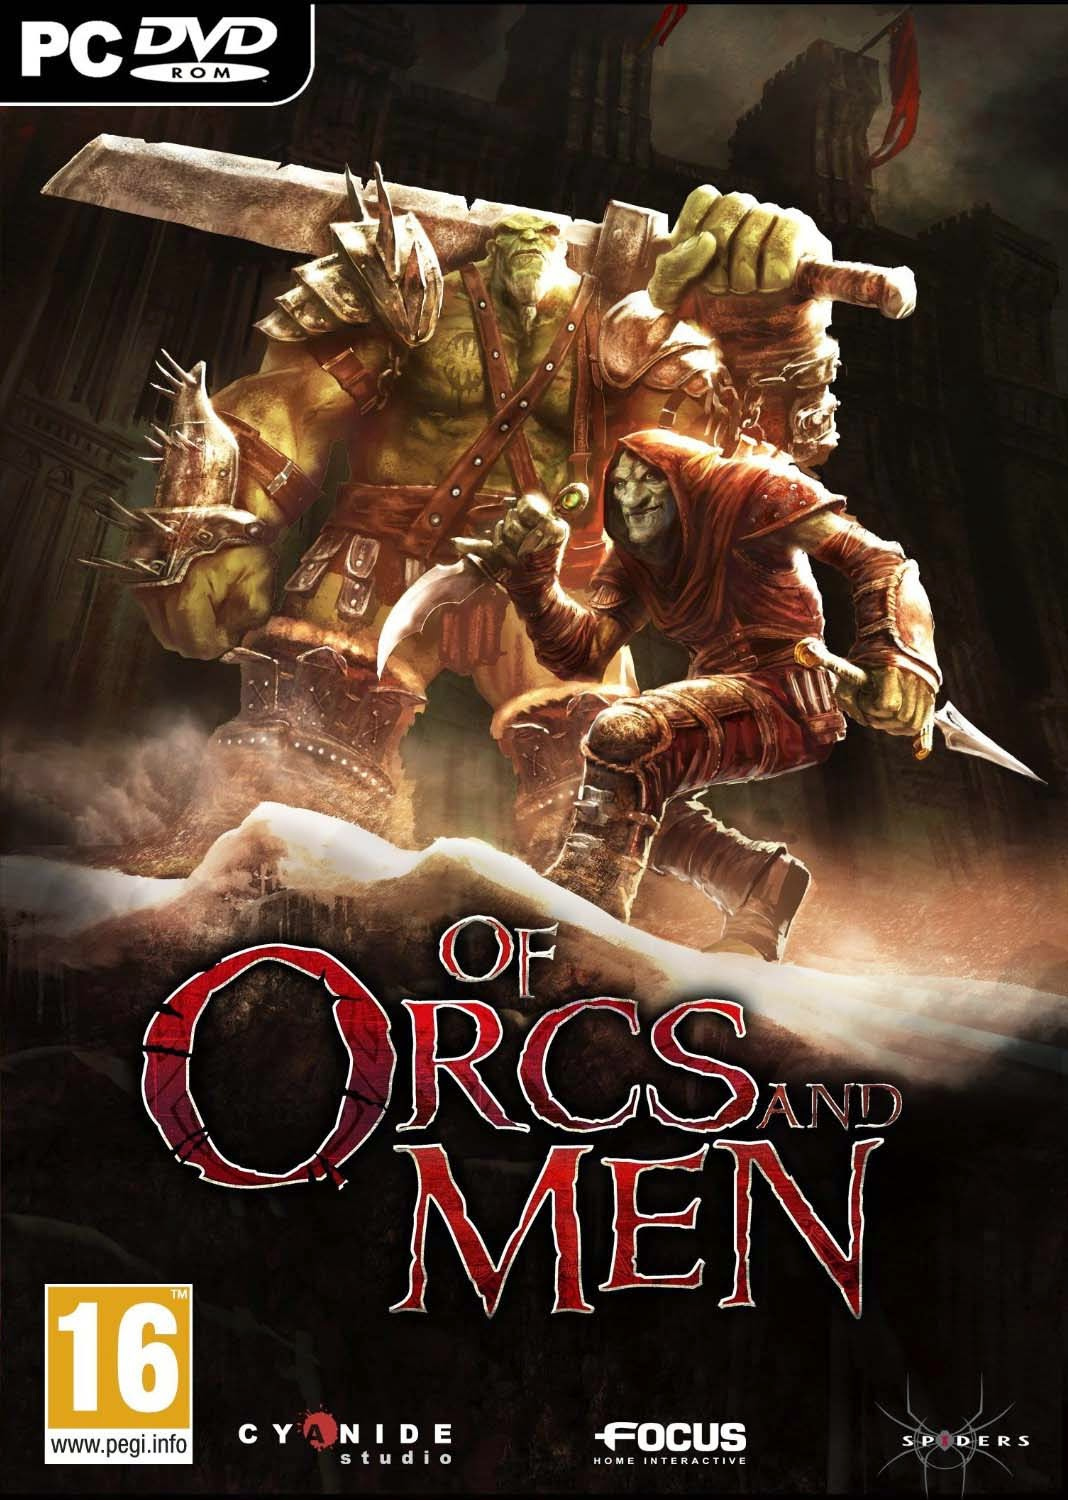 Of-Arcs-and-Men-DVD-Cover